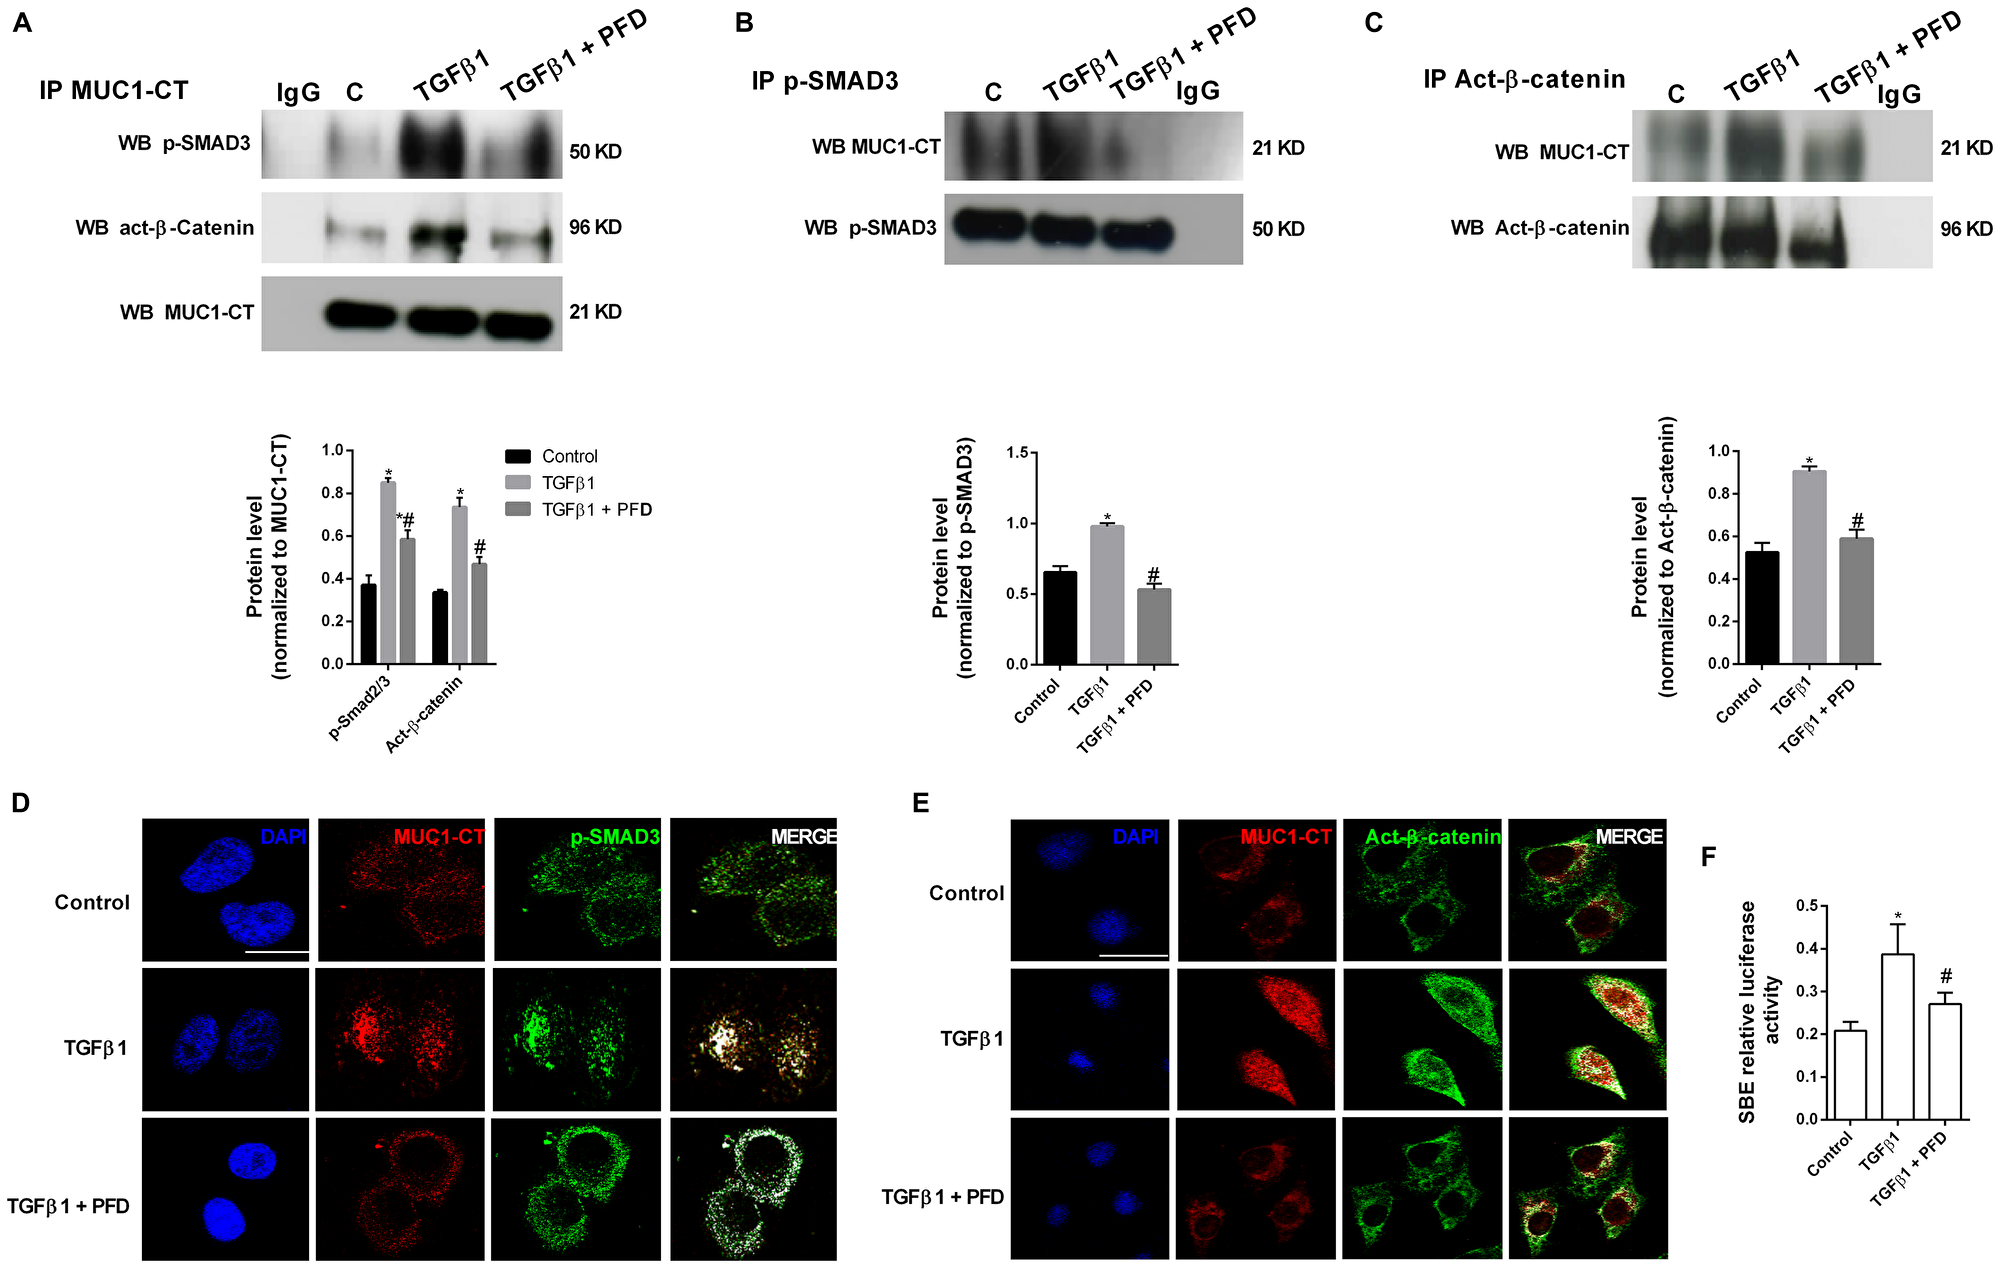 Pirfenidone (PFD) inhibits MUC1-CT co-localization with phospho (p)-Smad3 and active (act)-β-catenin in the nuclei of alveolar epithelial type II (ATII) cells stimulated with TGFβ1.